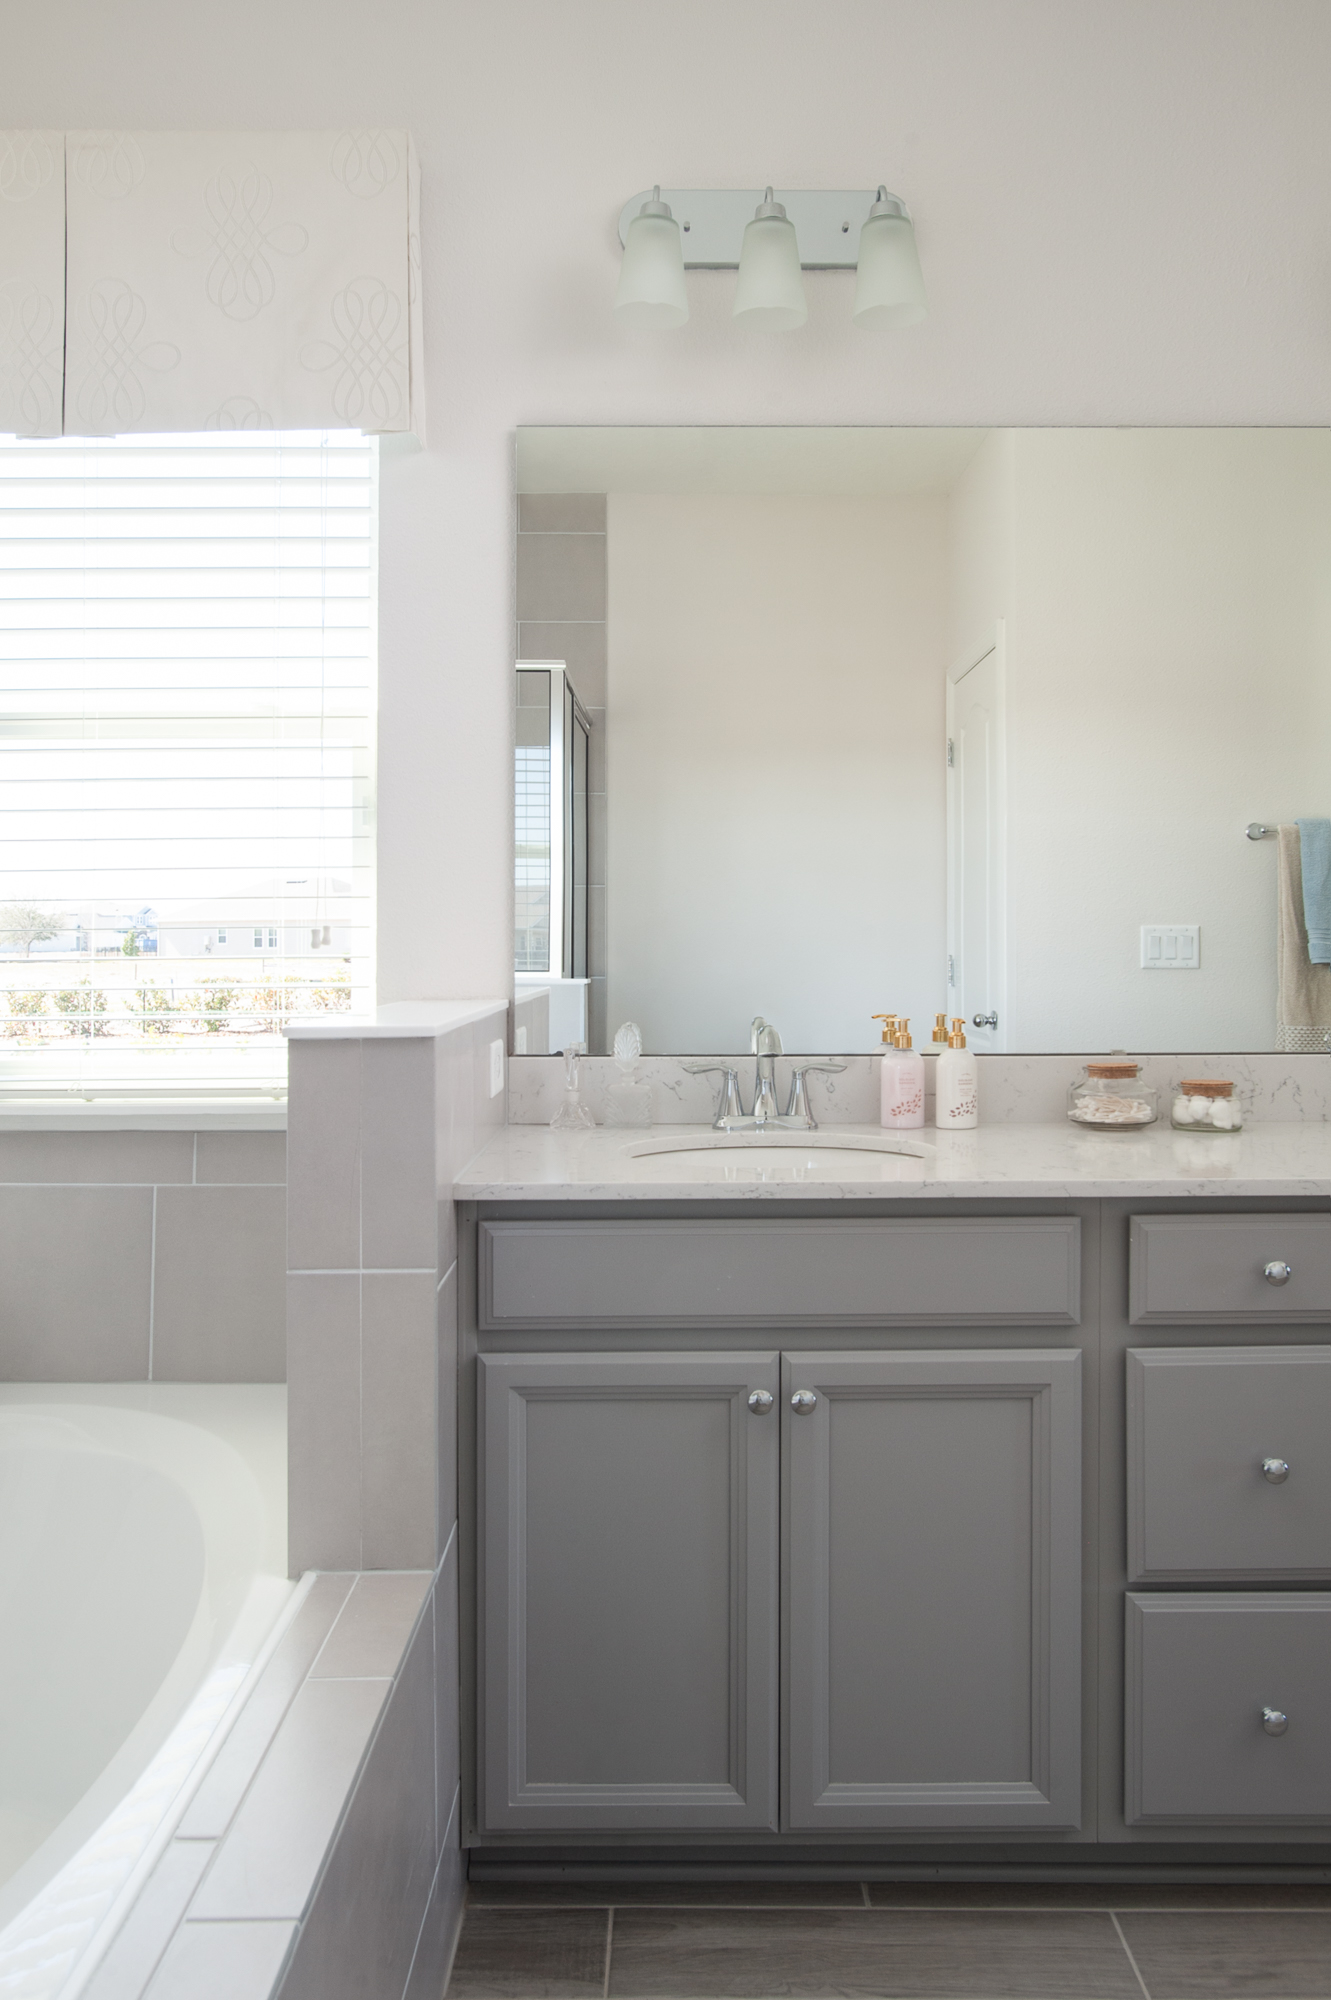 Micamy_Interior Designer_Design_Interior_Model_Merchandising_Owners_Suite_Universal_Furniture_Traditional_Transitional_Bathroom_Vanity_Grey_Cabinets_Bath.jpg